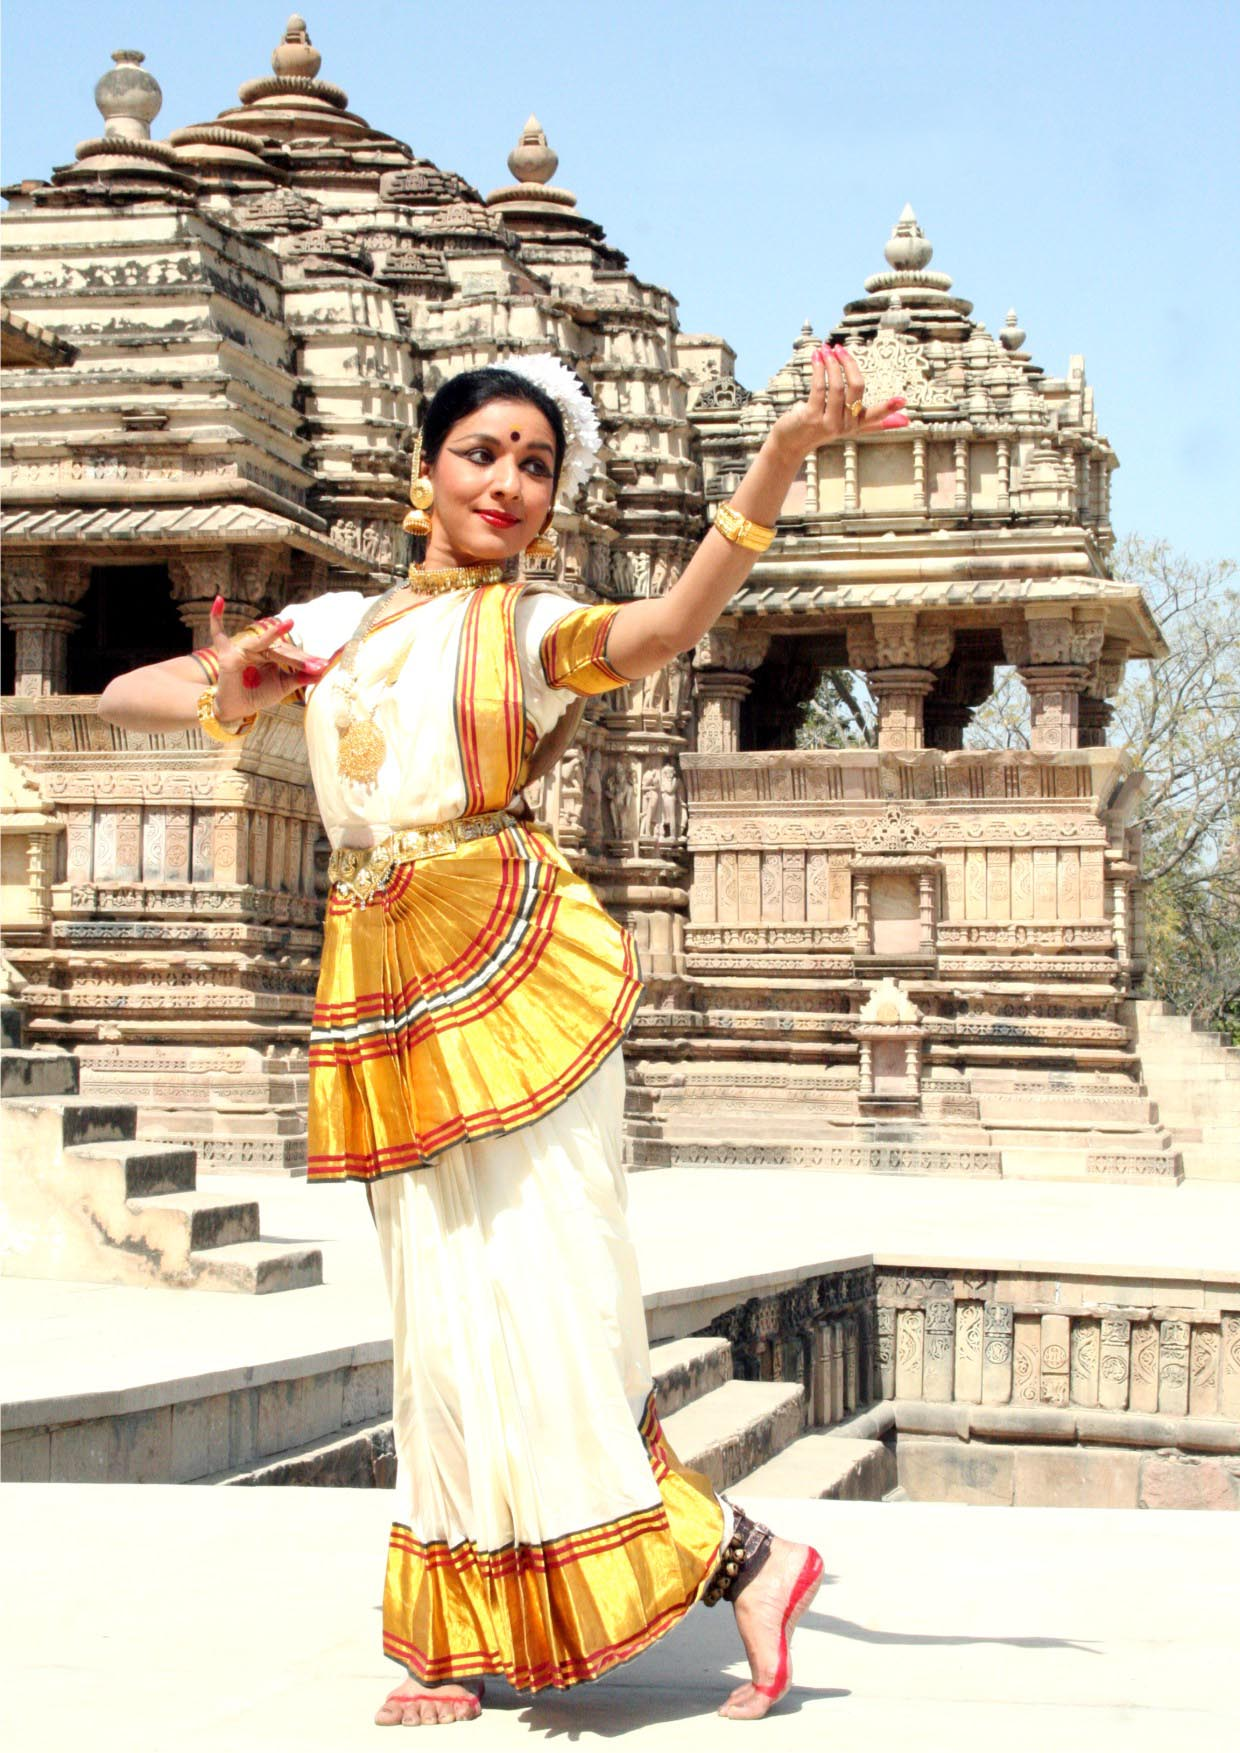 Classical Indian Dance Incorporates a Traditional Aesthetic with Contemporary Social Activism